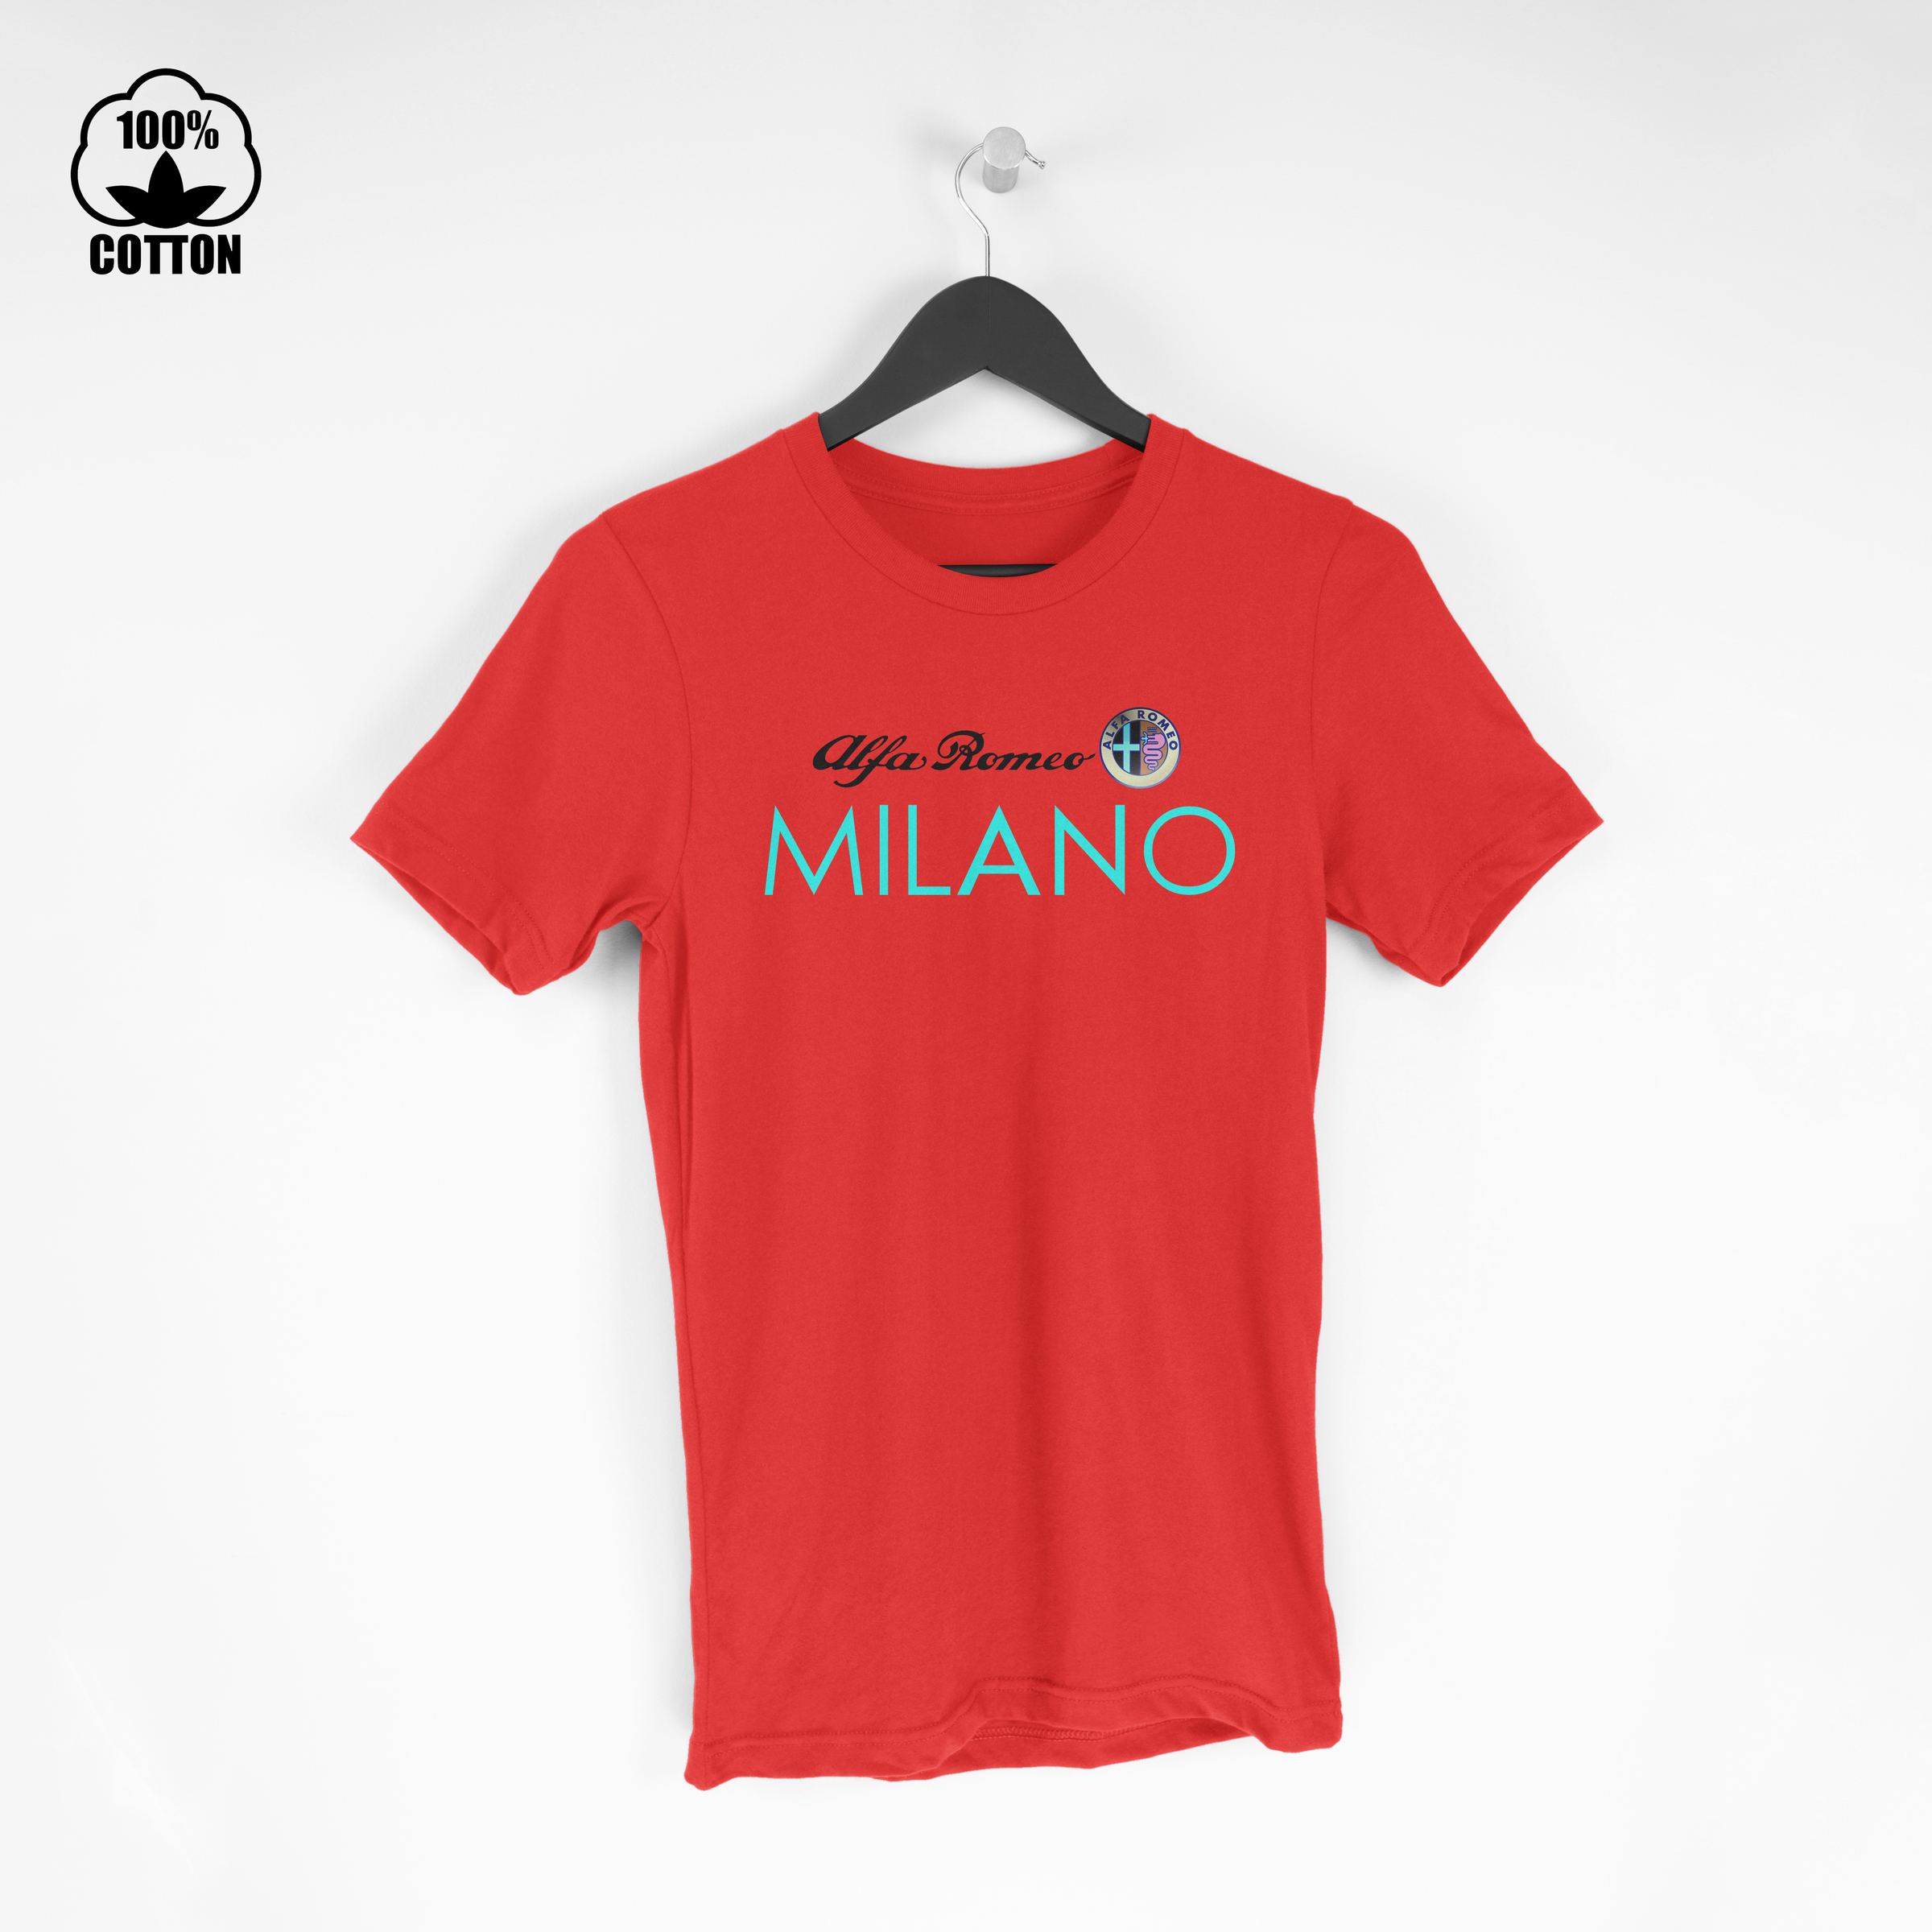 Alfa Romeo Shirt Milano Logo Tee Mens Clothing New Cotton Tshirt Size S-XXL USA Crimson1.jpg